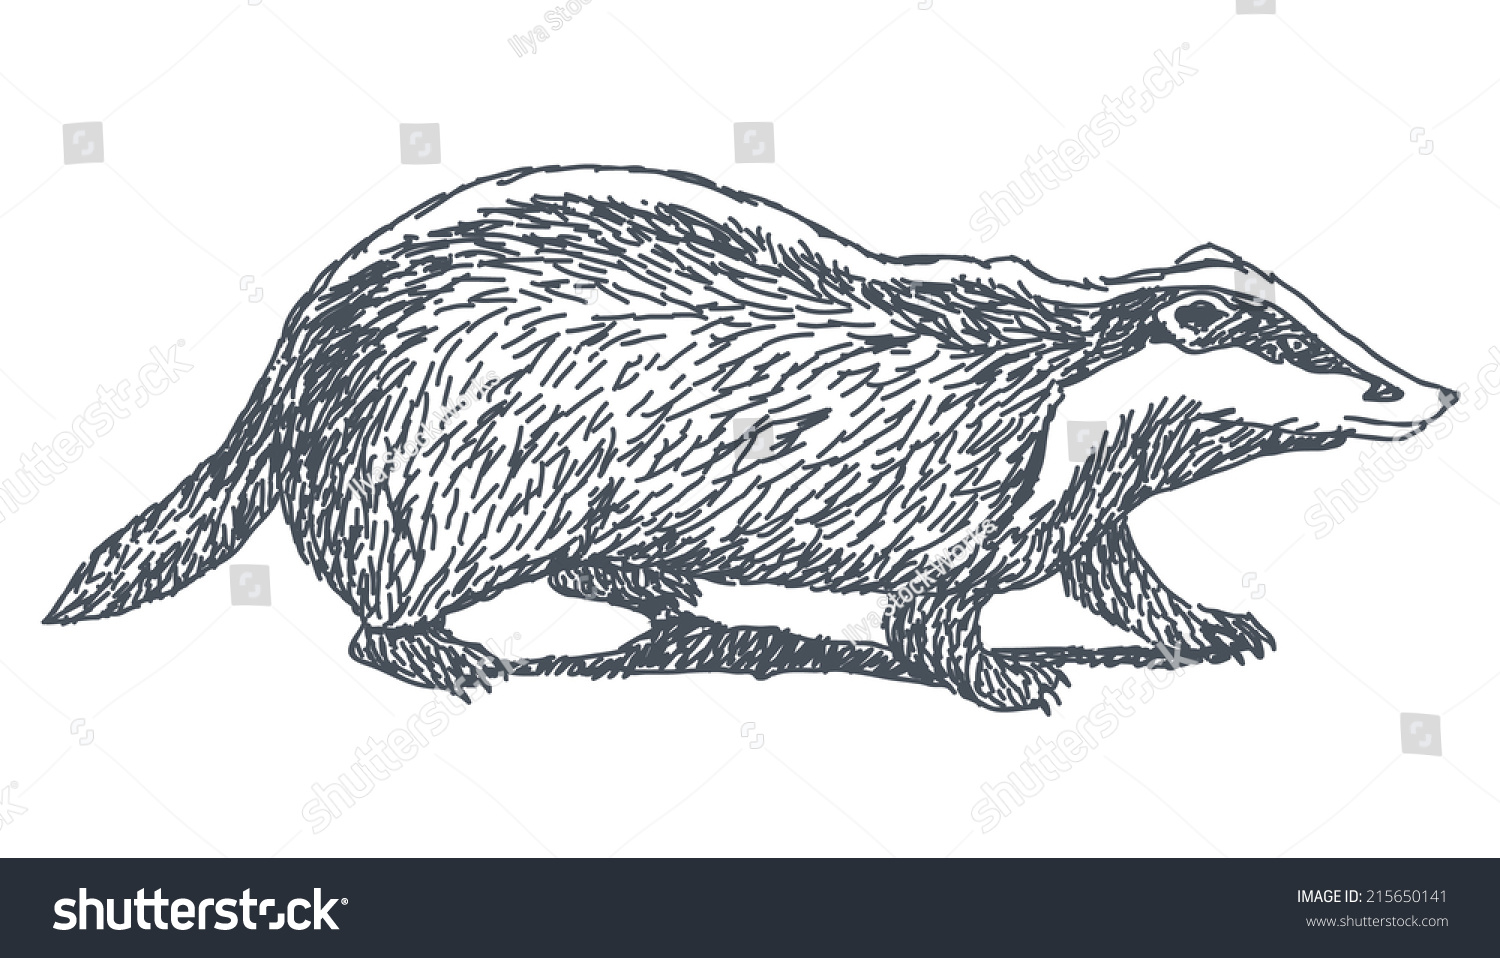 Uncategorized Badger Drawing badger sketch drawing isolated on white stock vector 215650141 background